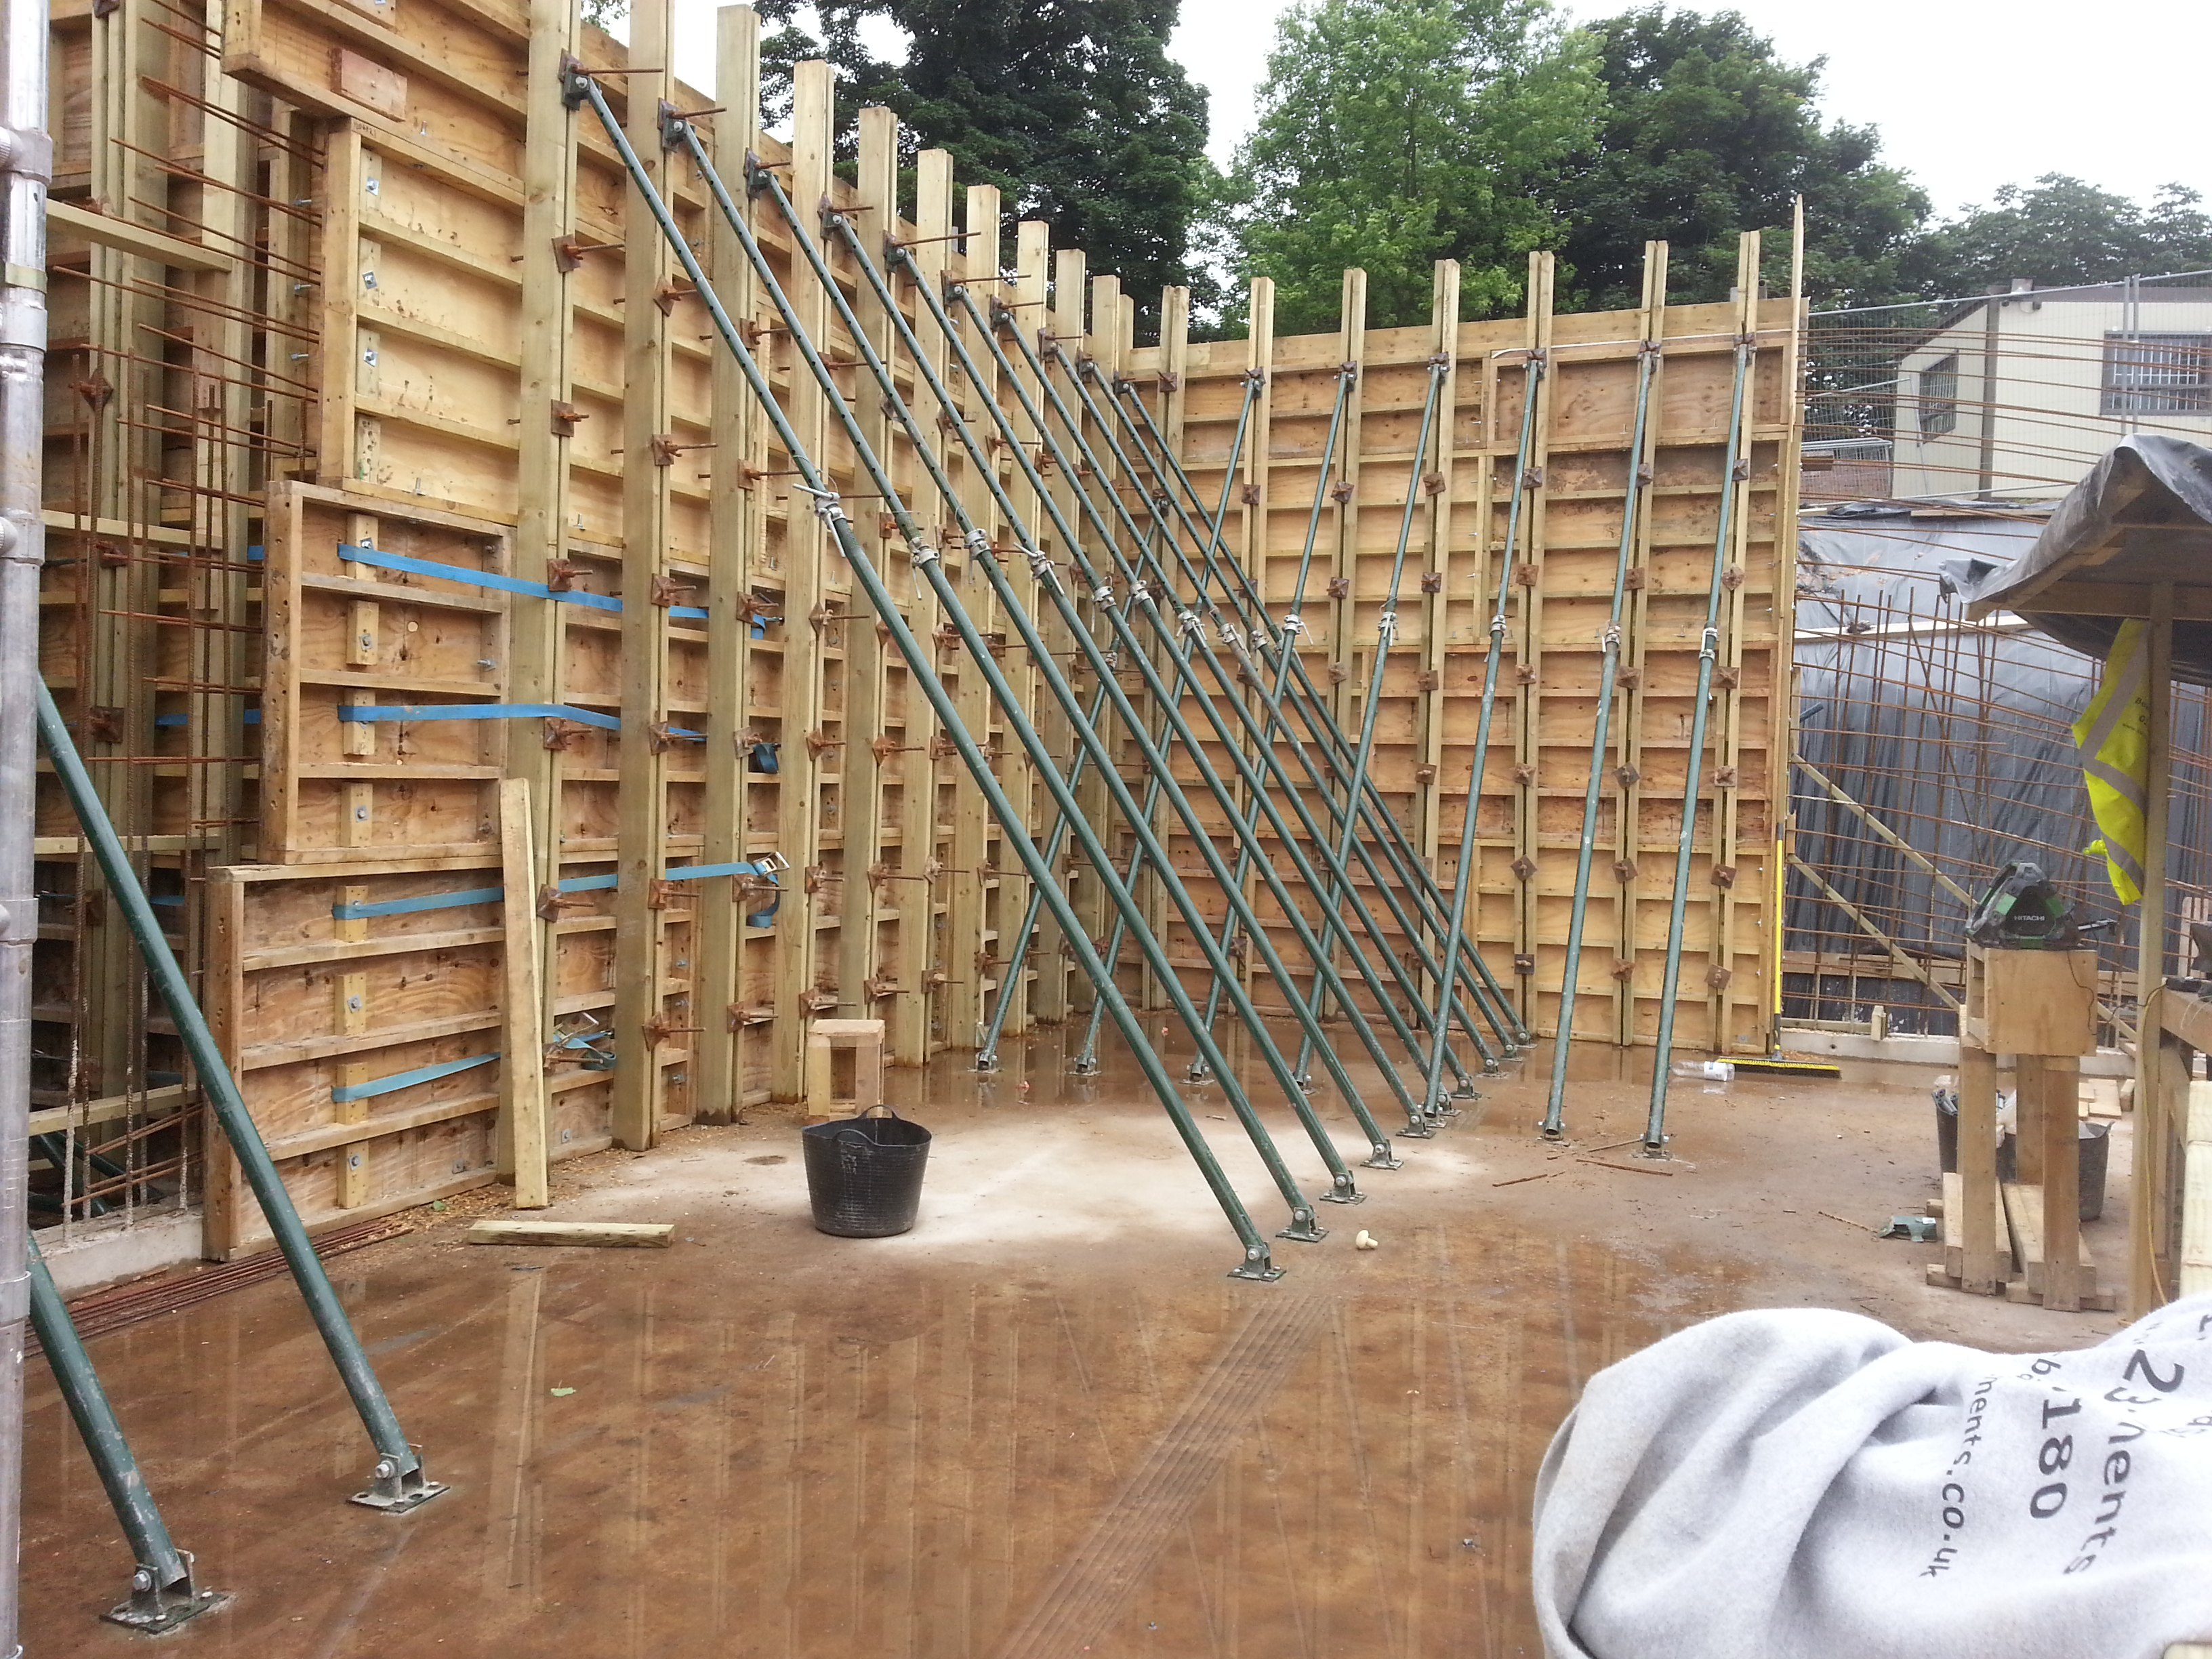 Very high walls, over 4.2m in height from the floor